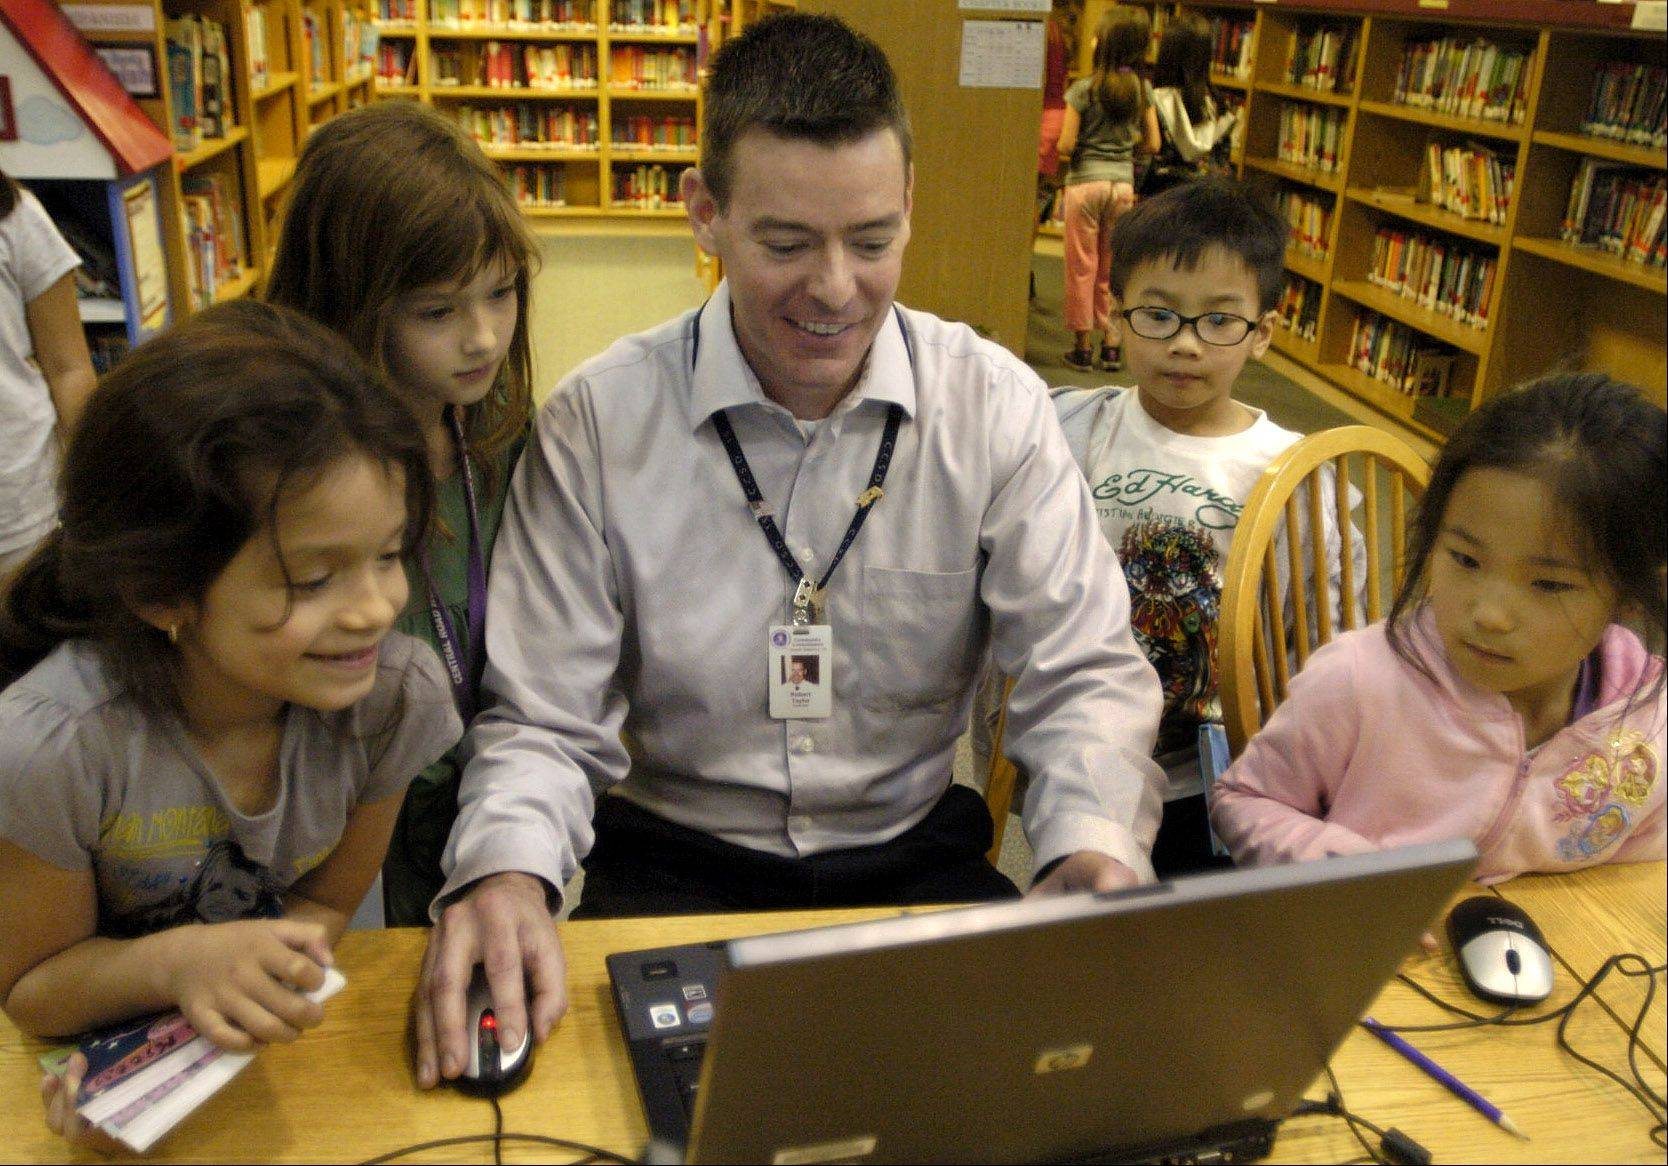 Golden Apple finalist second-grade teacher Rob Taylor at Central Road School in Rolling Meadows shows students, from left, Adriana Hurtado, Ella Gray, Hao Duong and Jessica Sun an integrated lesson involving biographies that incorporate research, writing, public speaking and art.